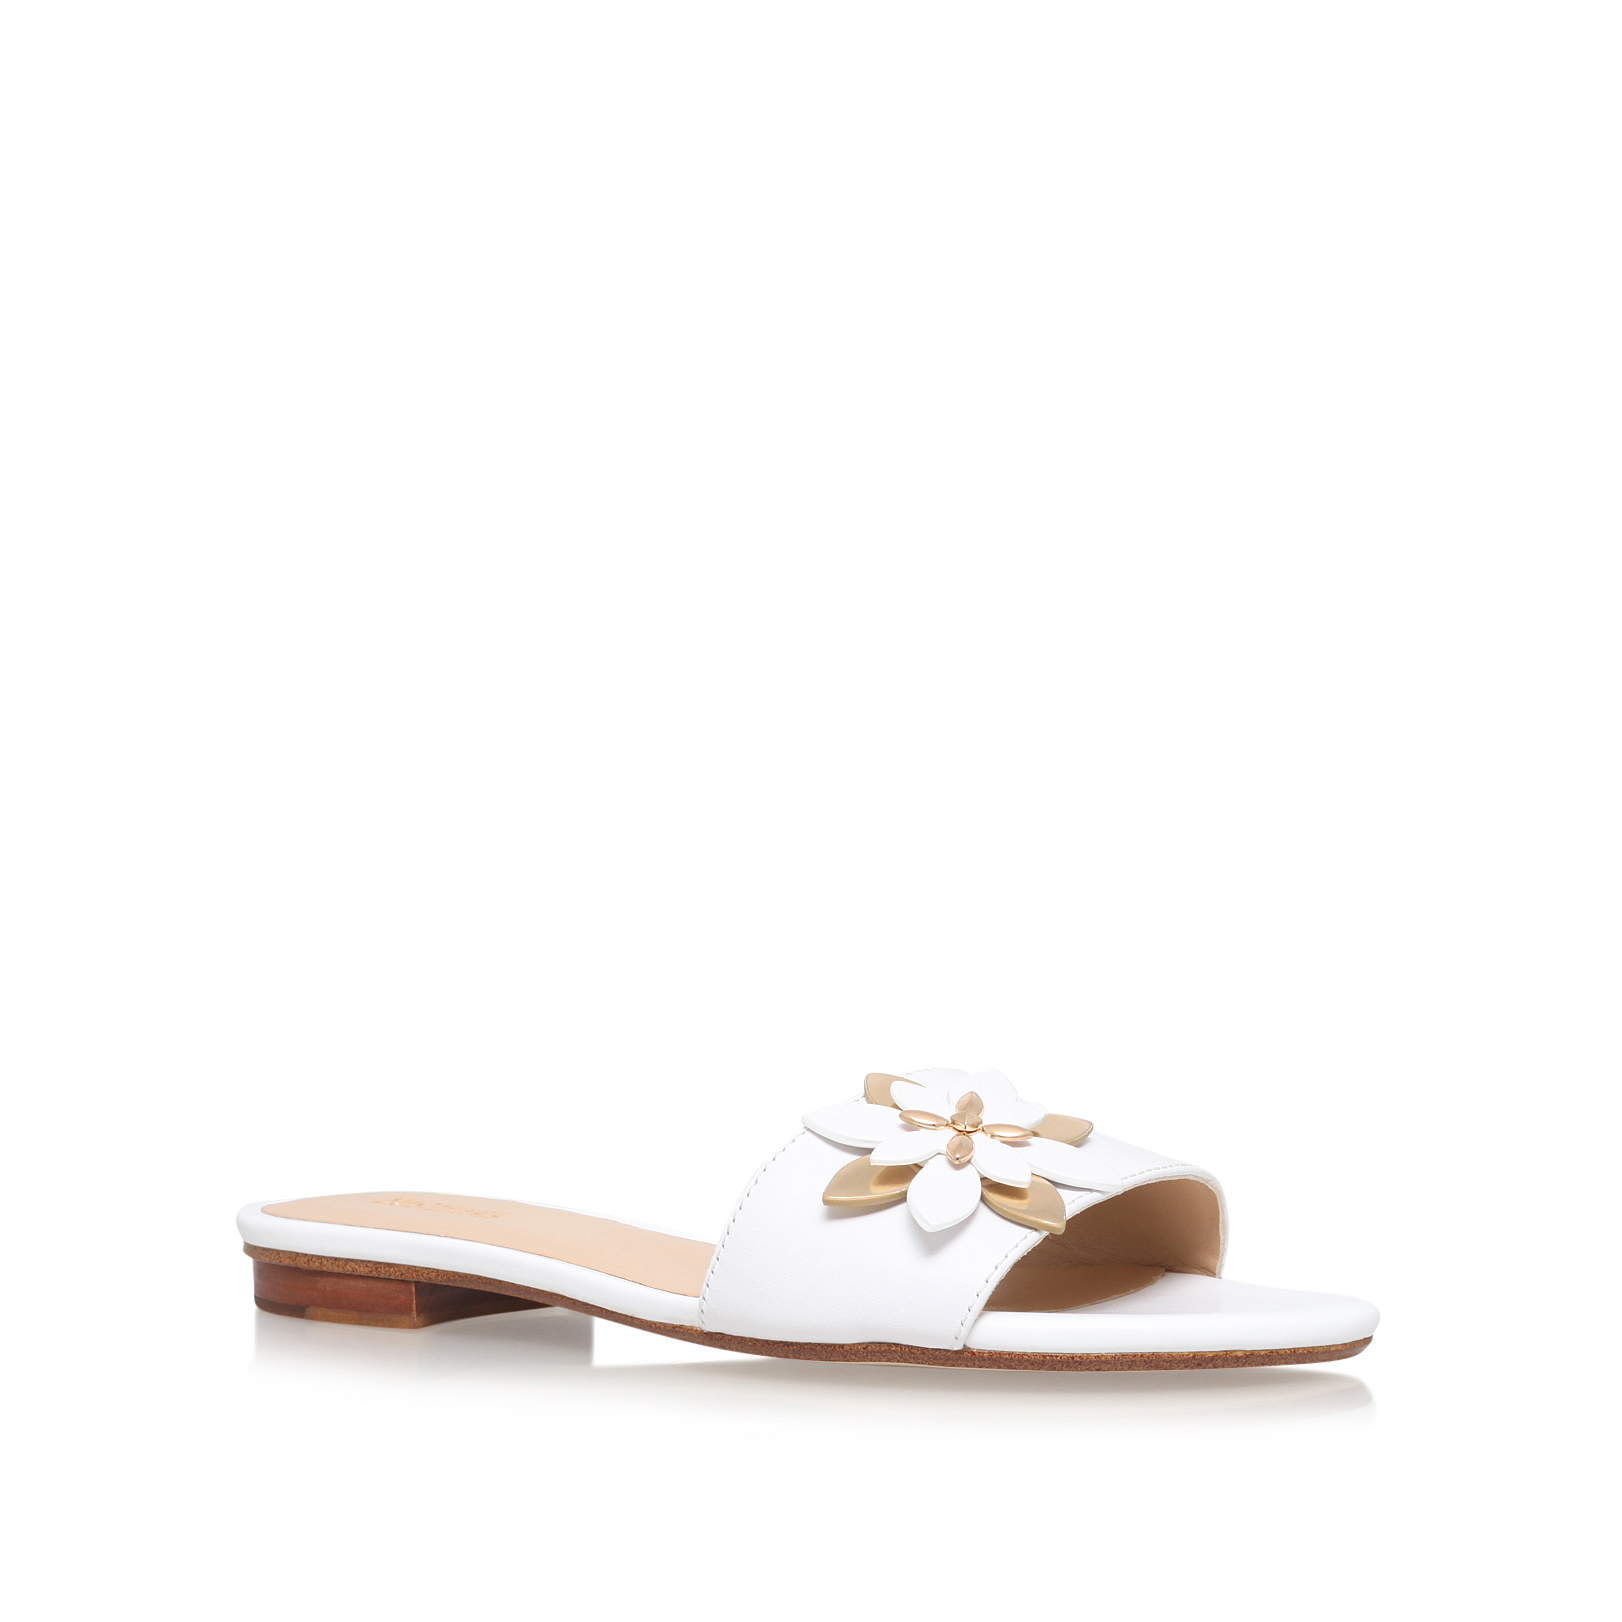 6aad9678a68 HEIDI FLAT SANDAL Michael Michael Kors Heidi White Leather   Other Summer Flat  Sandals by MICHAEL MICHAEL KORS